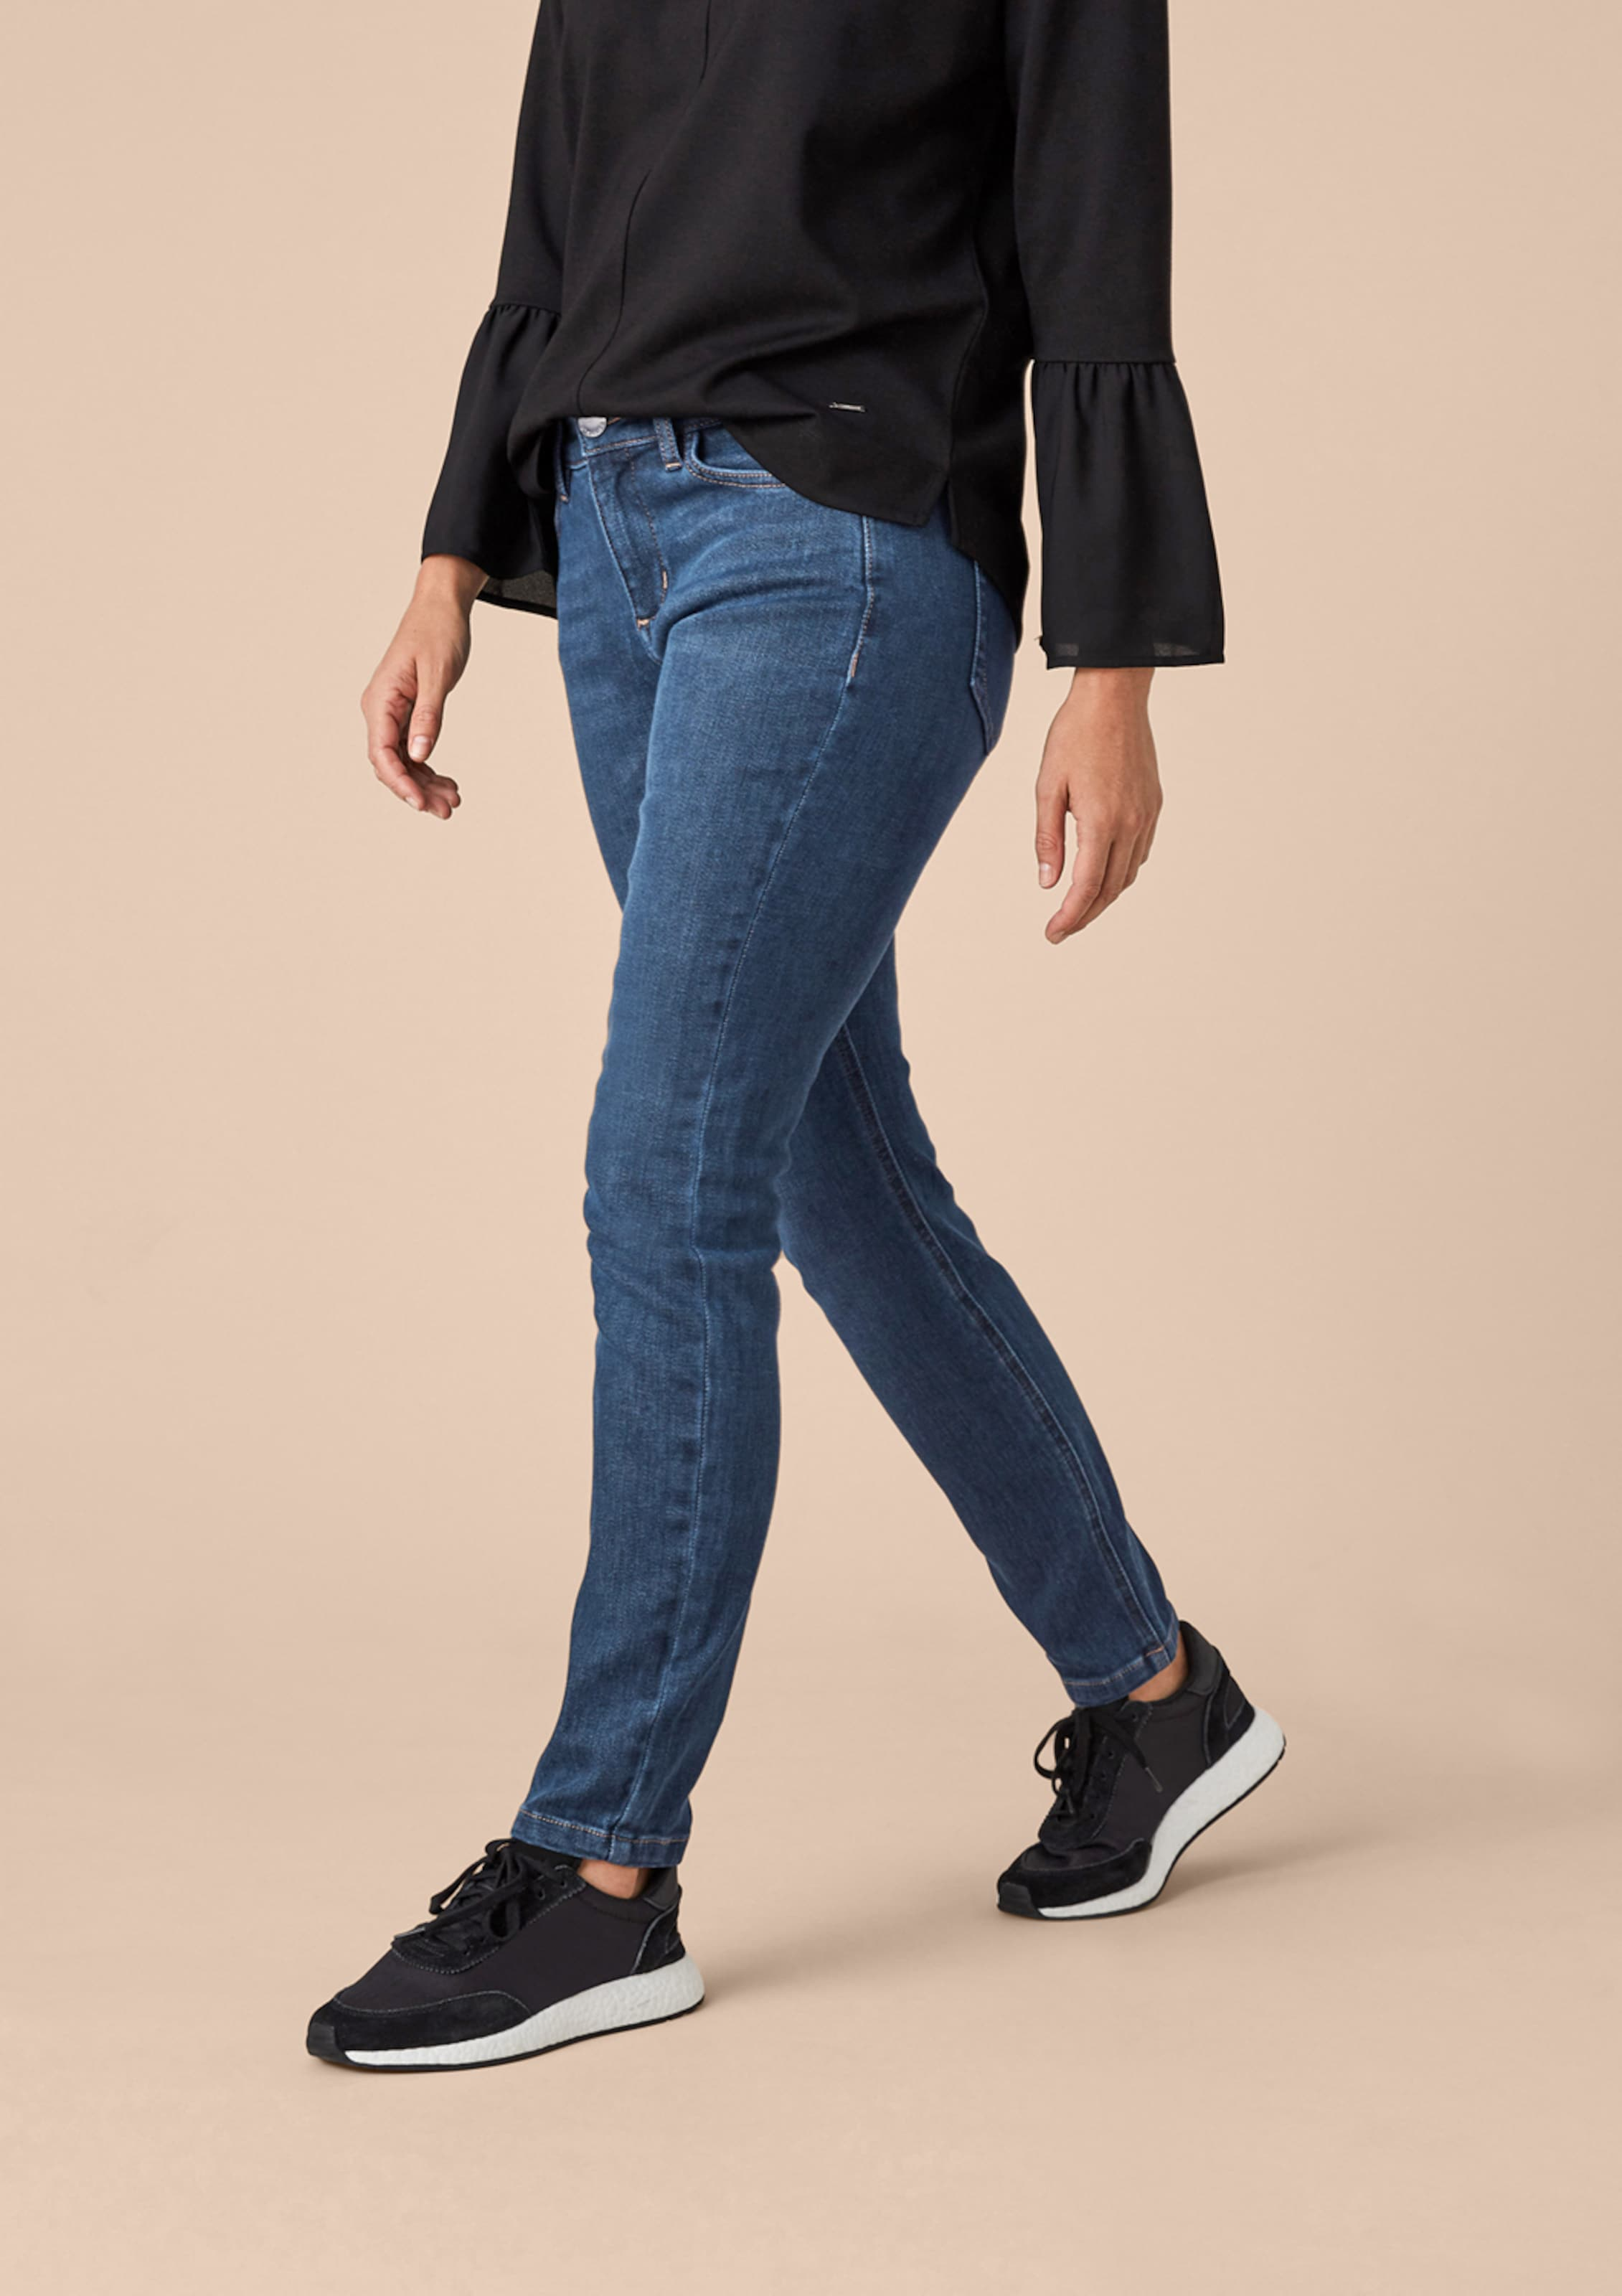 In Triangle Blue Jeans Jeans In Triangle Denim Denim Blue WYeH29IED